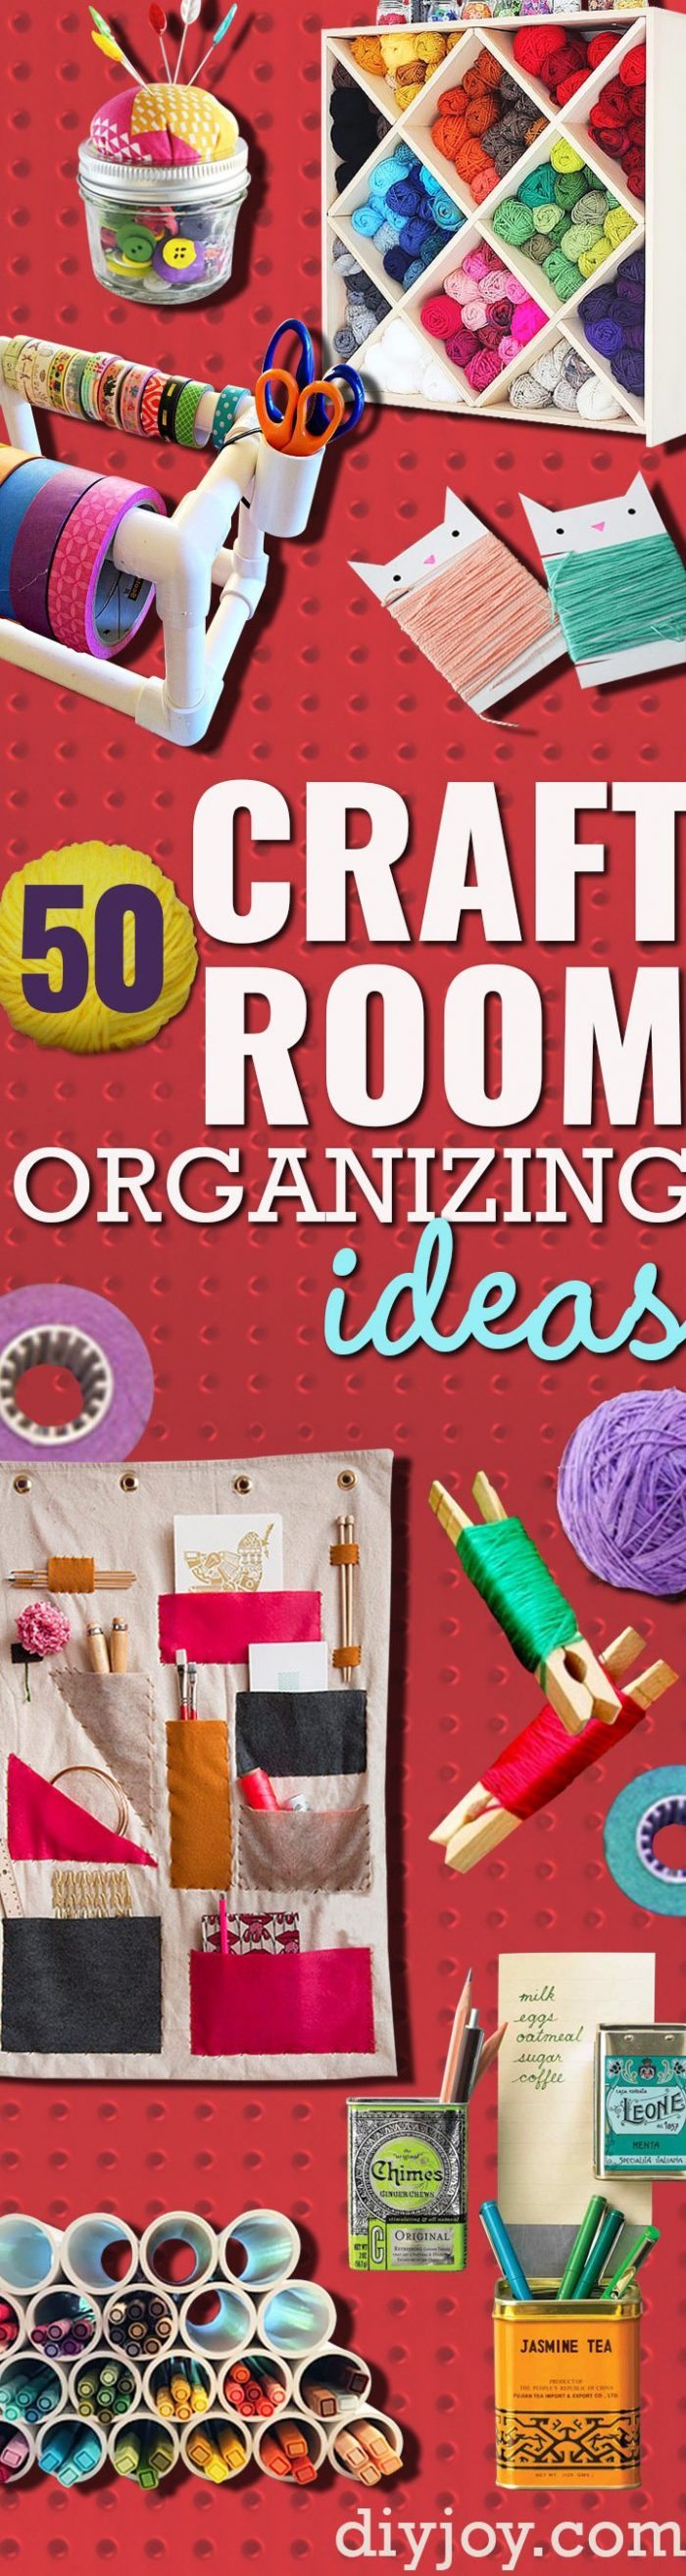 DIY Craft Room Ideas and Craft Room Organization Projects -- Cool Ideas for Do It Yourself Craft Storage - fabric, paper, pens, creative tools, crafts supplies and sewing notions |